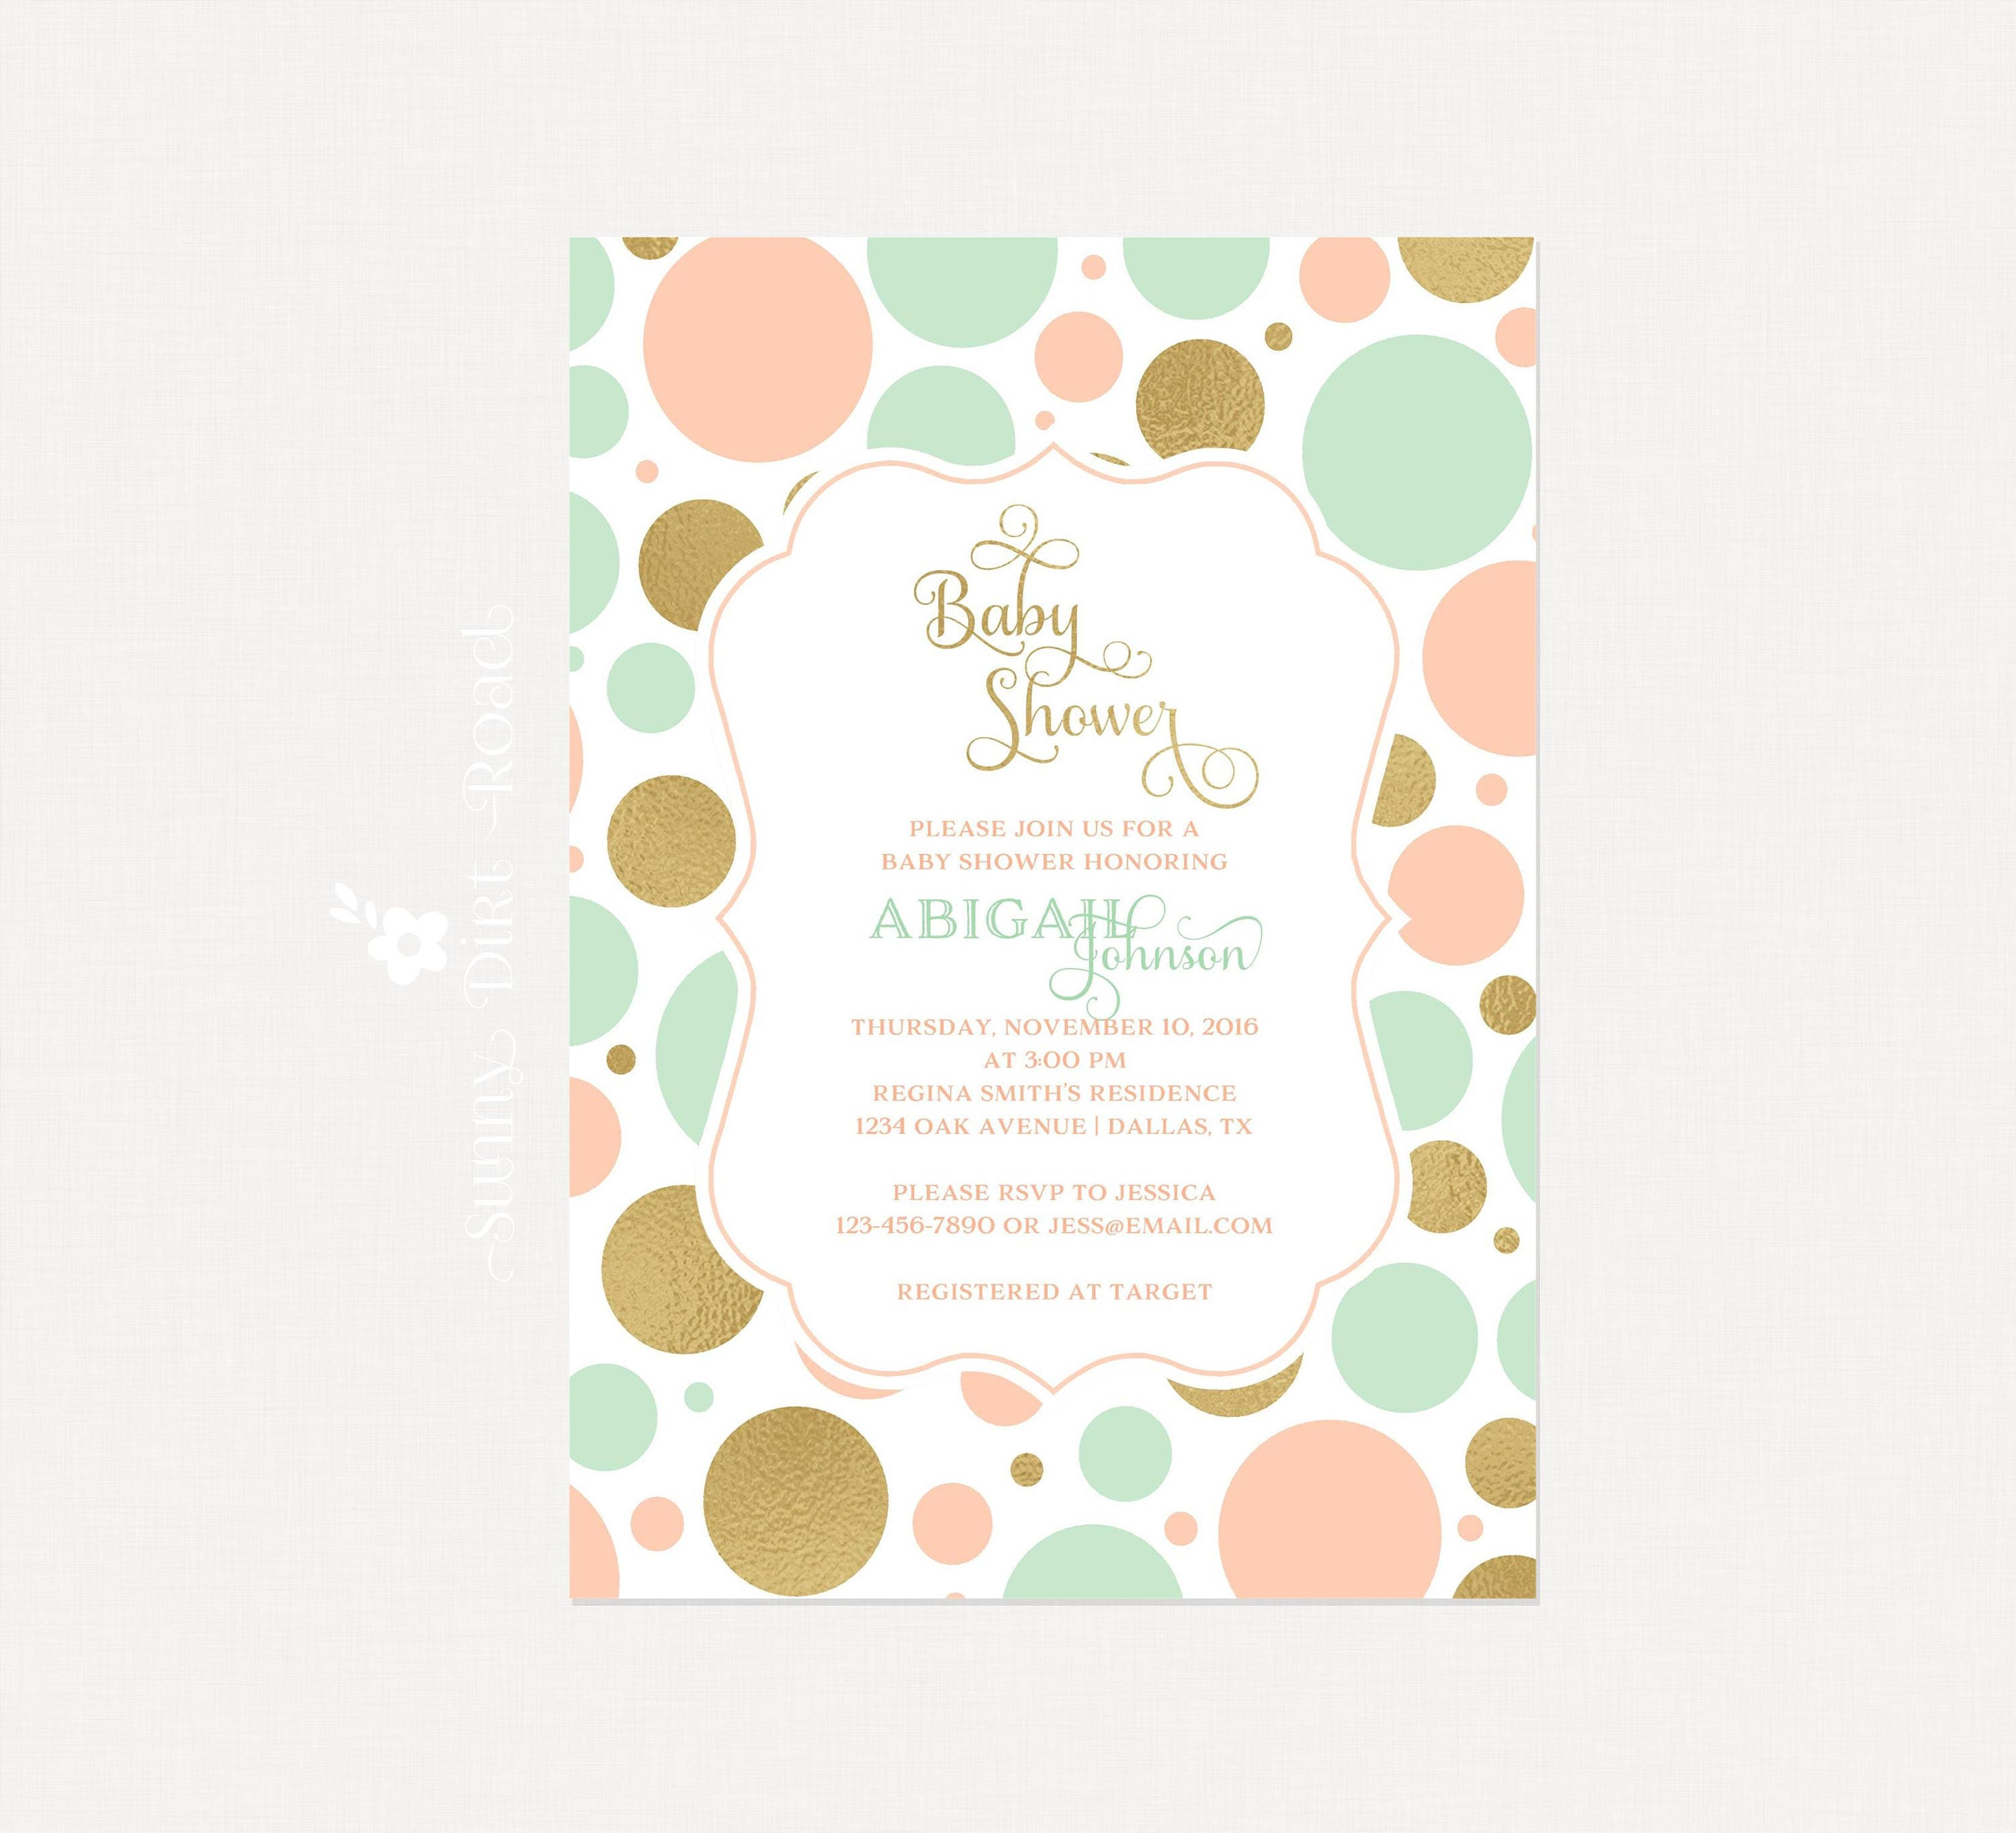 picture blank bridal paper baby blush shower glitter pink print invitation invitations collection gold wedding unique bunny